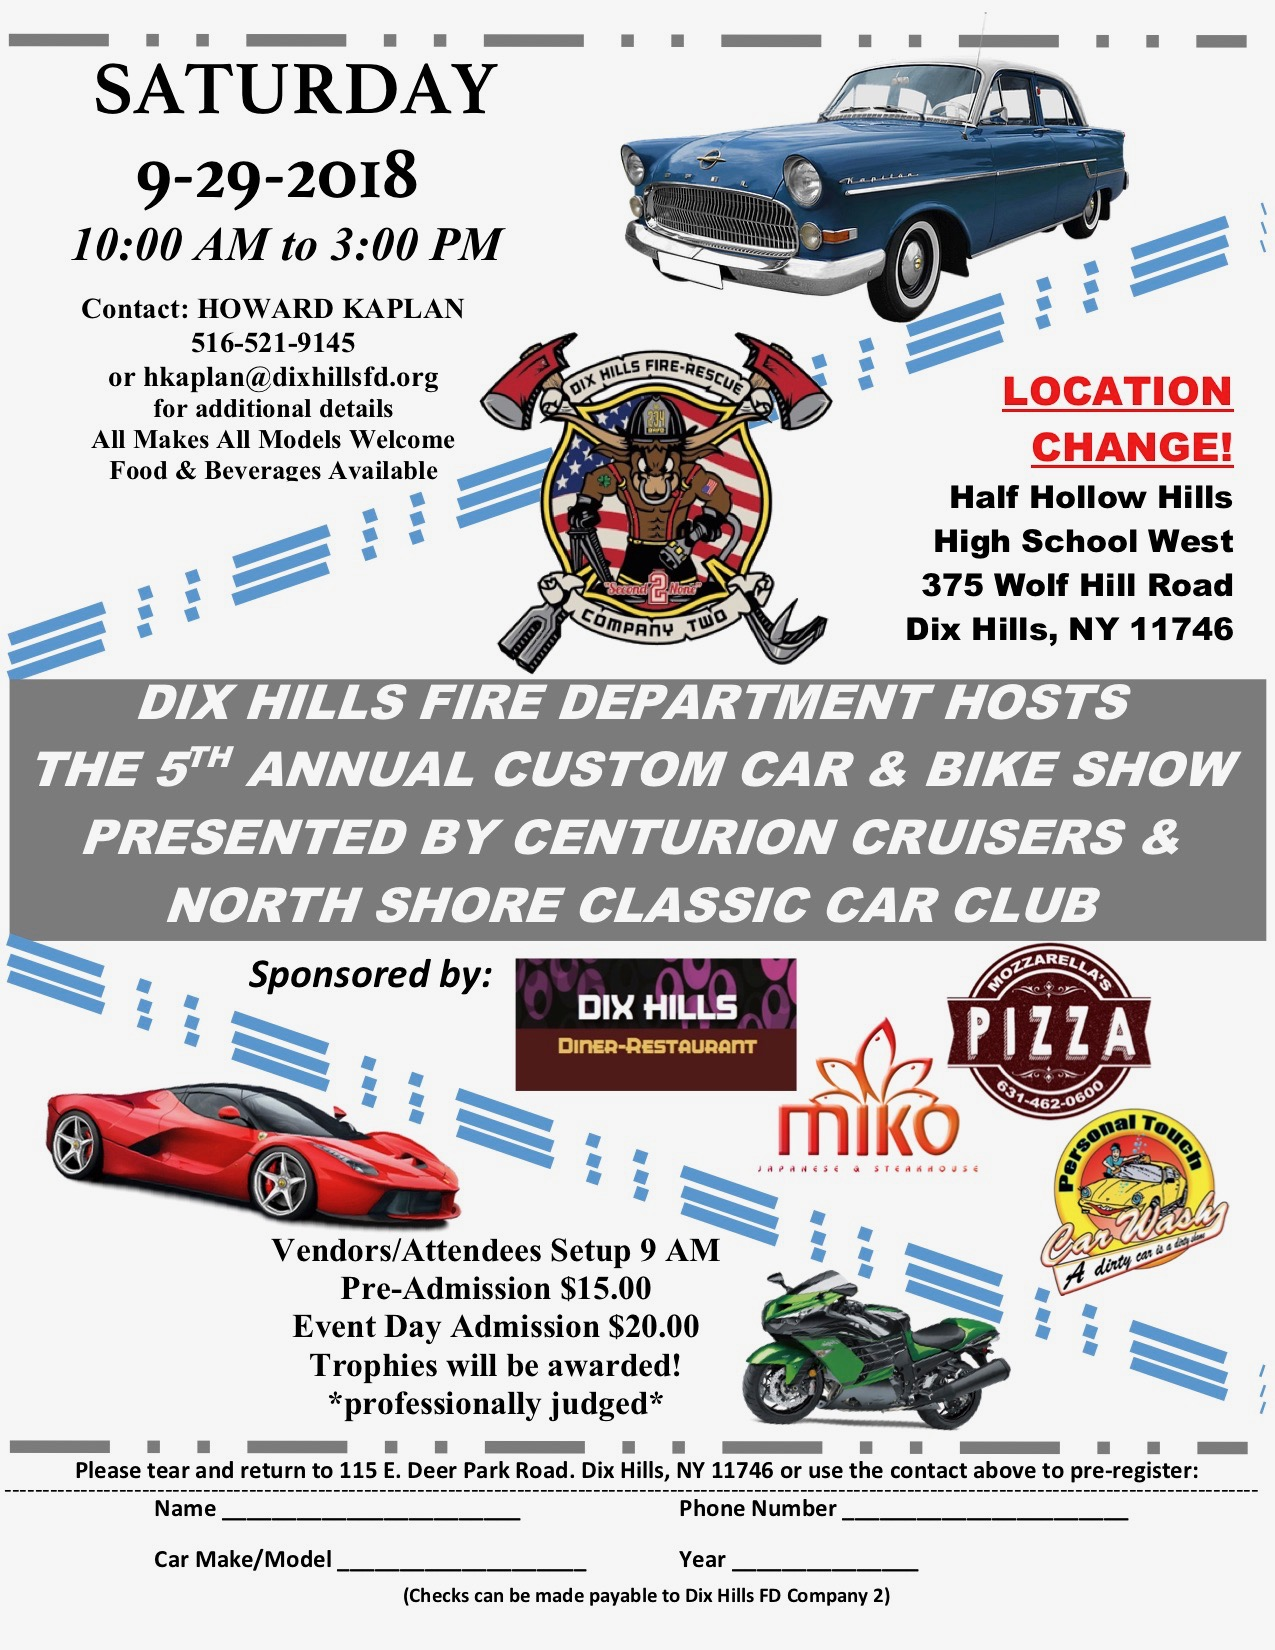 Dix Hills FD Car Show Today Saturday September The - Is there a car show near me today